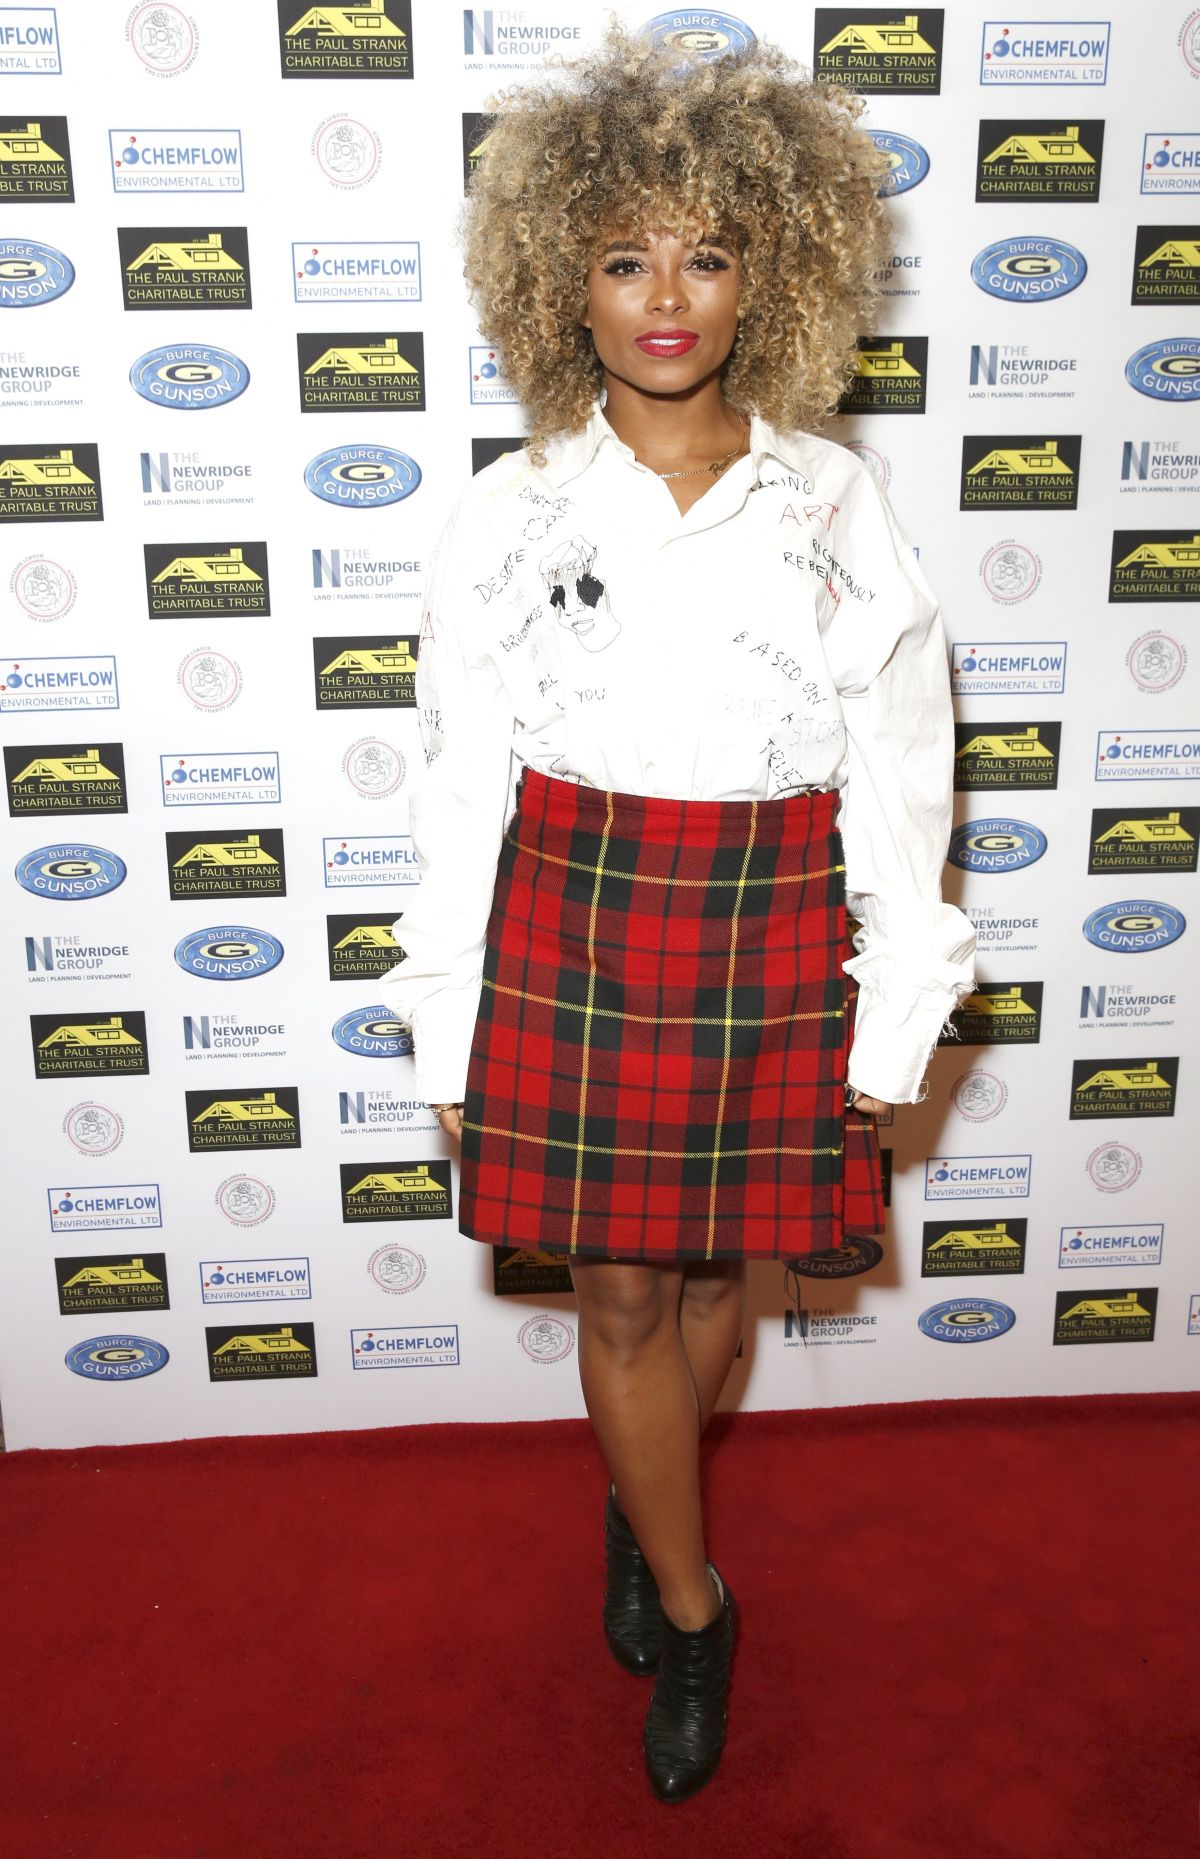 fleur east at the paul strank charitable trust annual gala bank of england sports centre. Black Bedroom Furniture Sets. Home Design Ideas